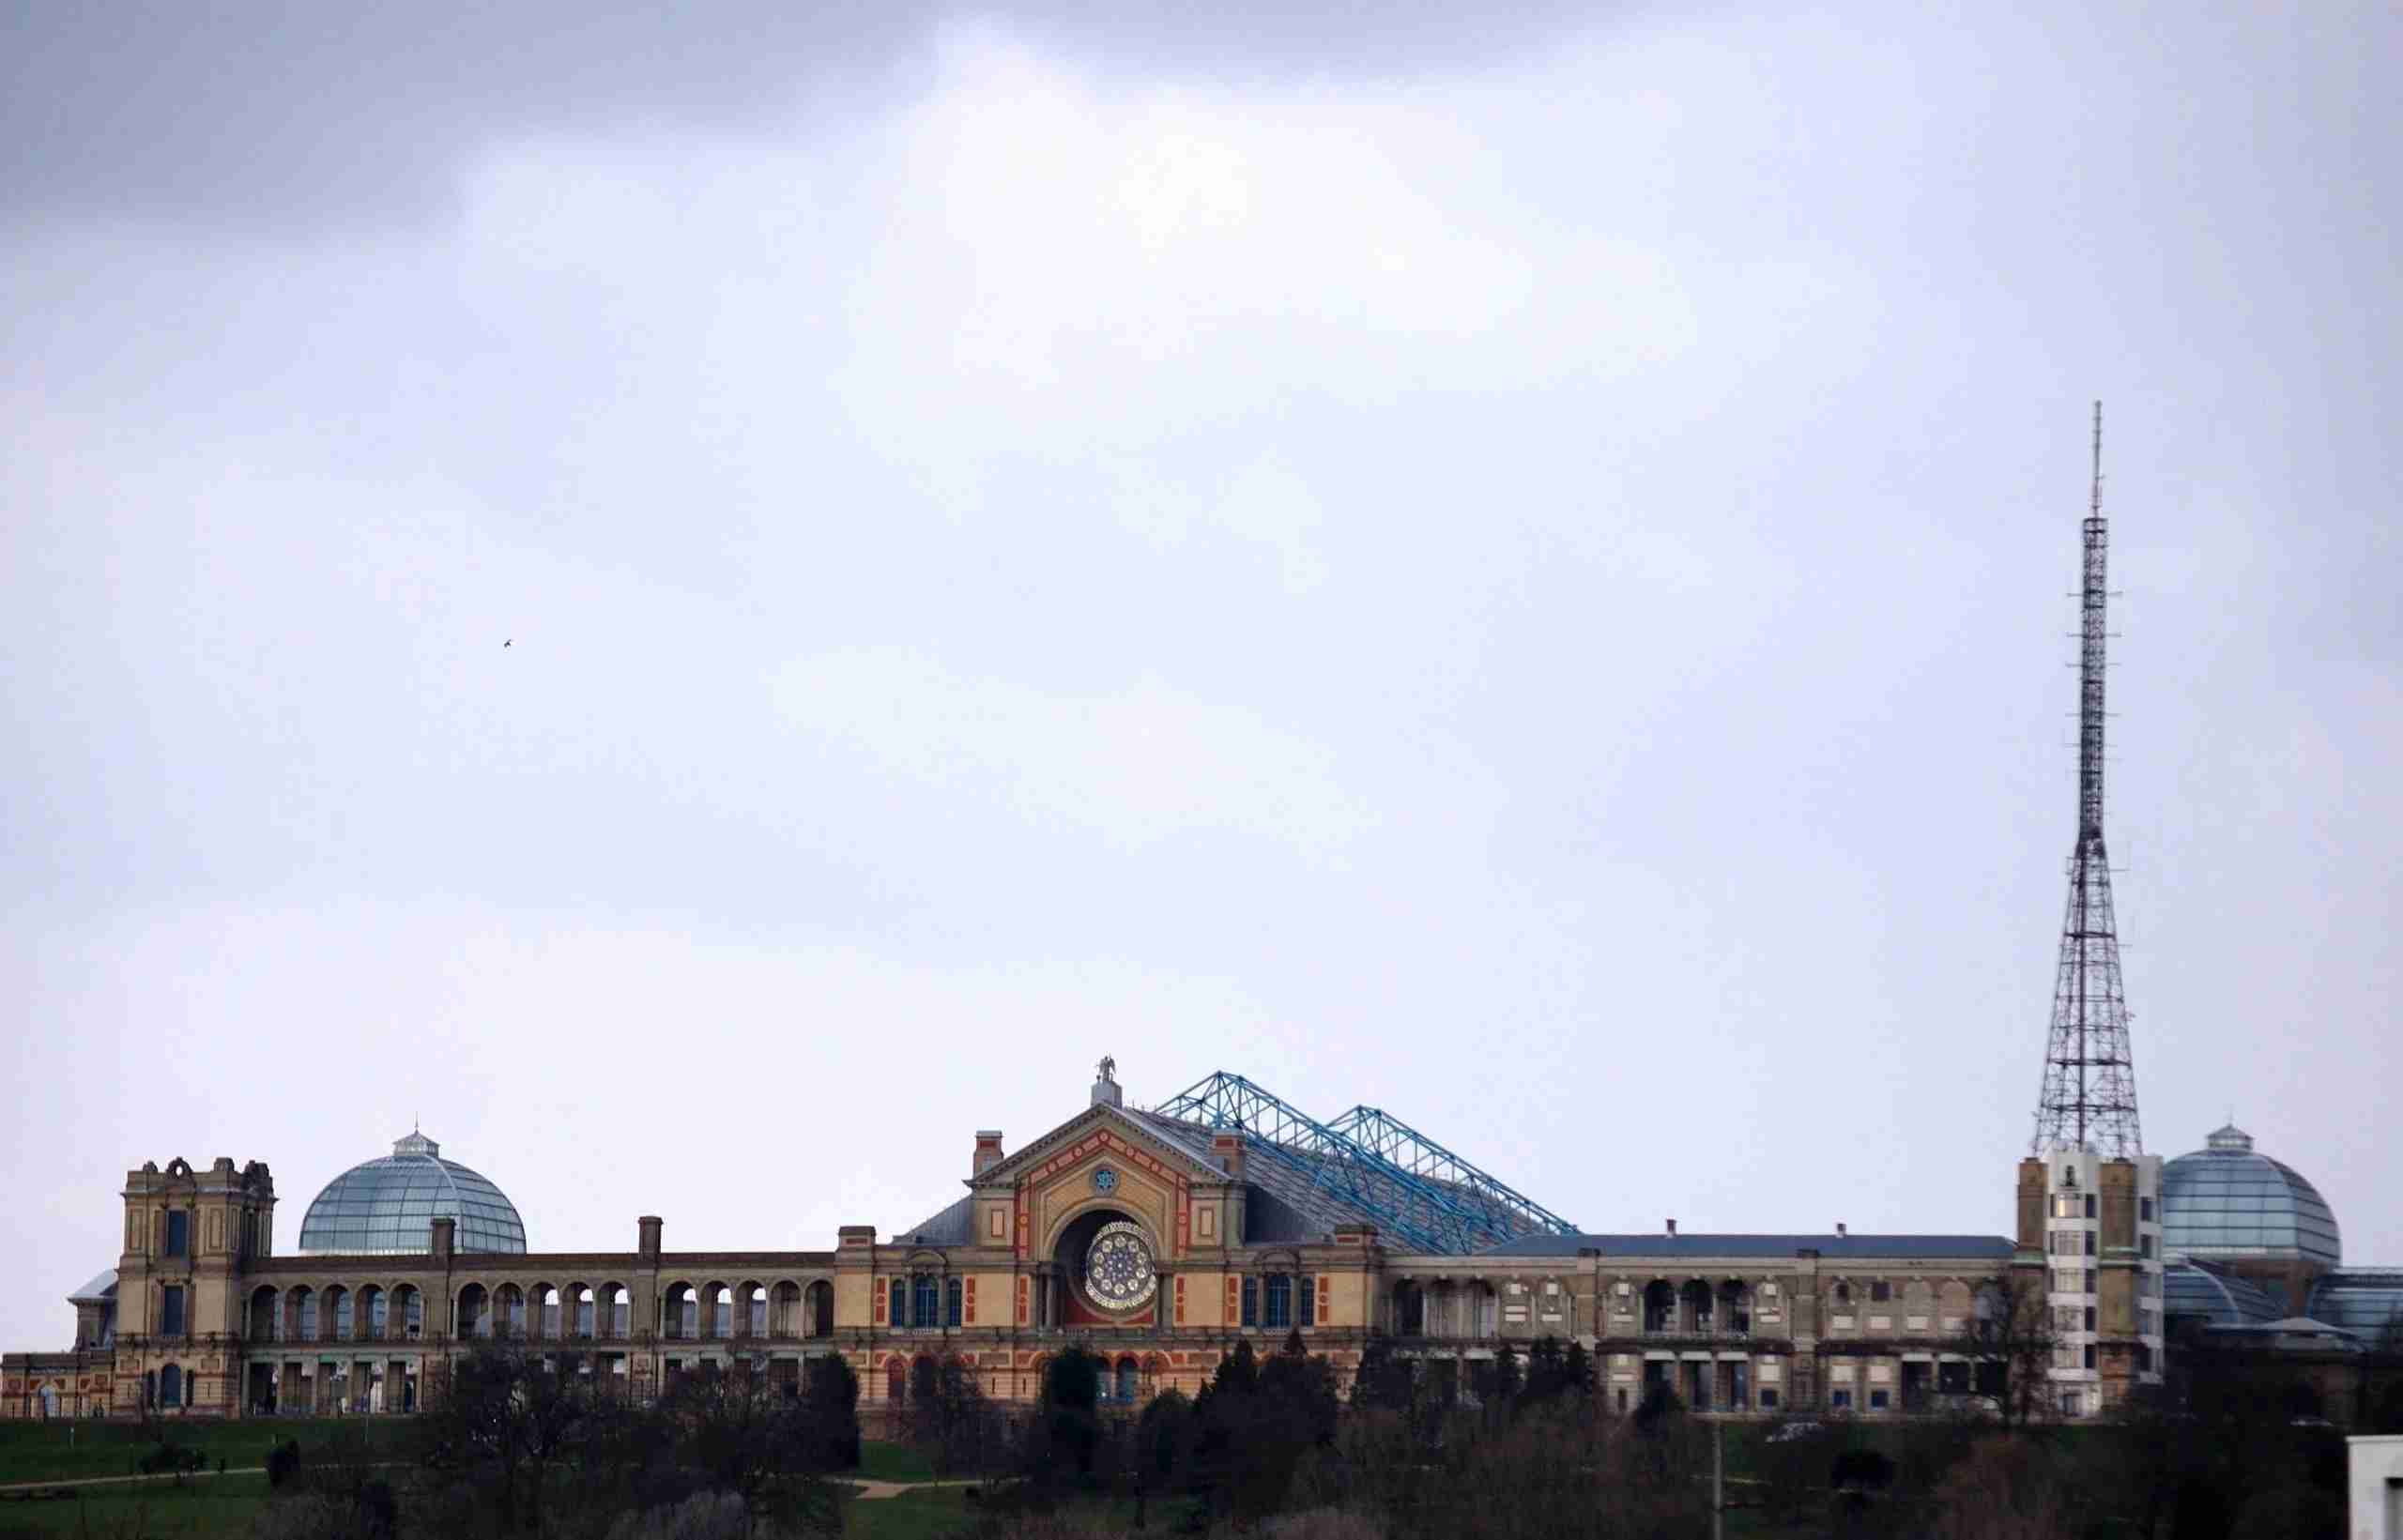 Majestic Alexandra Palace in north London. (Photo by Getty Images/Zalabardo)